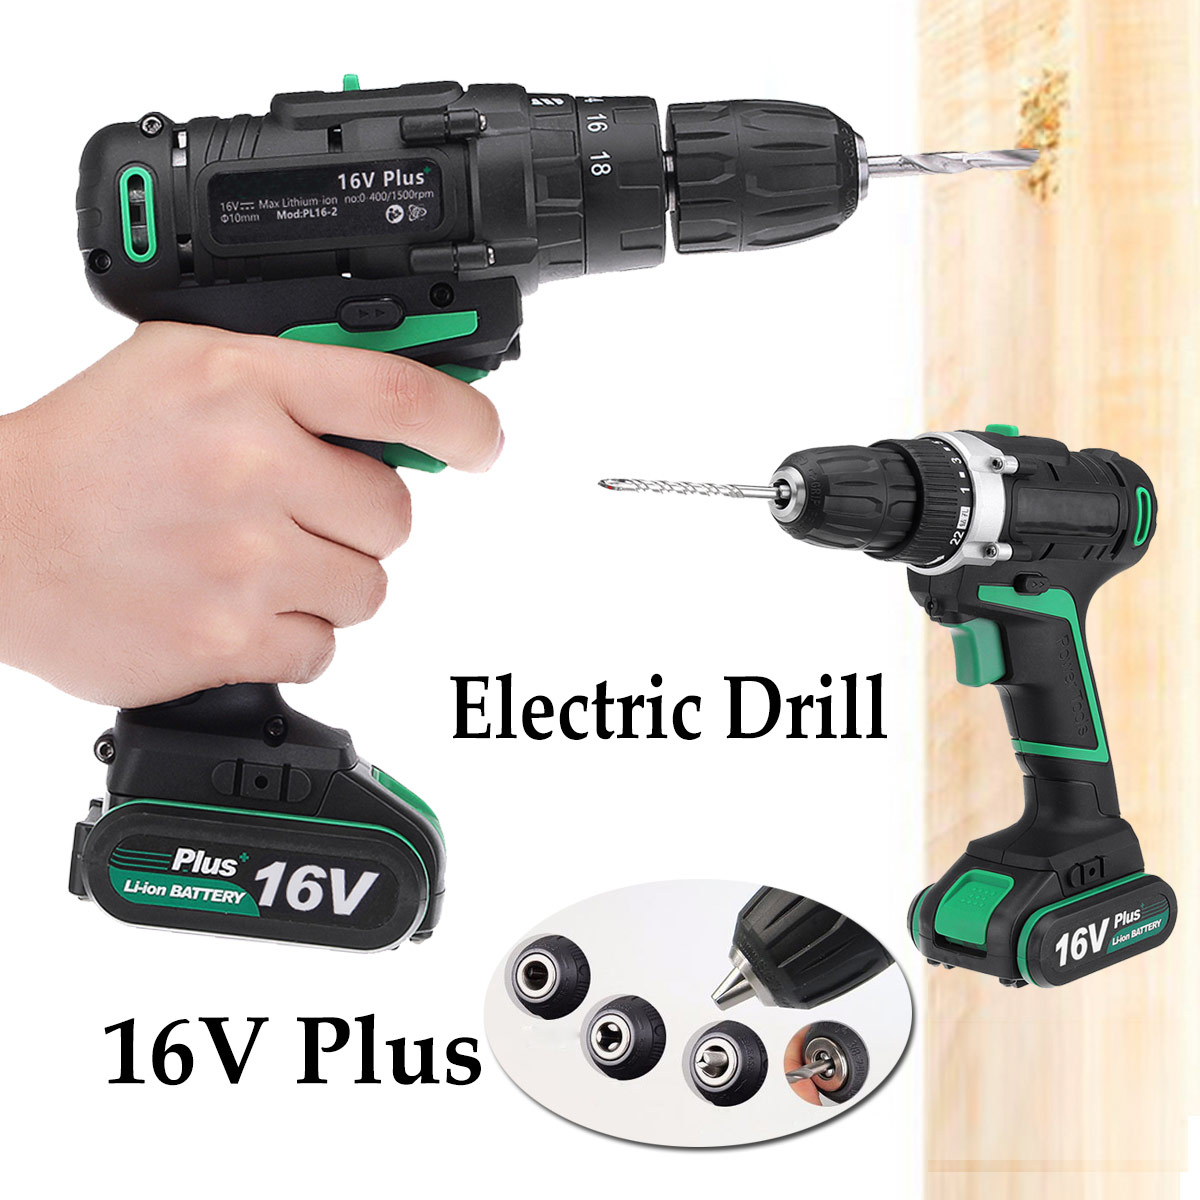 AC 100-240V Cordless Electric Drill Screwdriver Lithium-ion Battery 16V US Plug Mini Hand Drill Wireless Electrical Power Tools 0 8e5 professional electric screwdriver hand tool 100 240v us plug